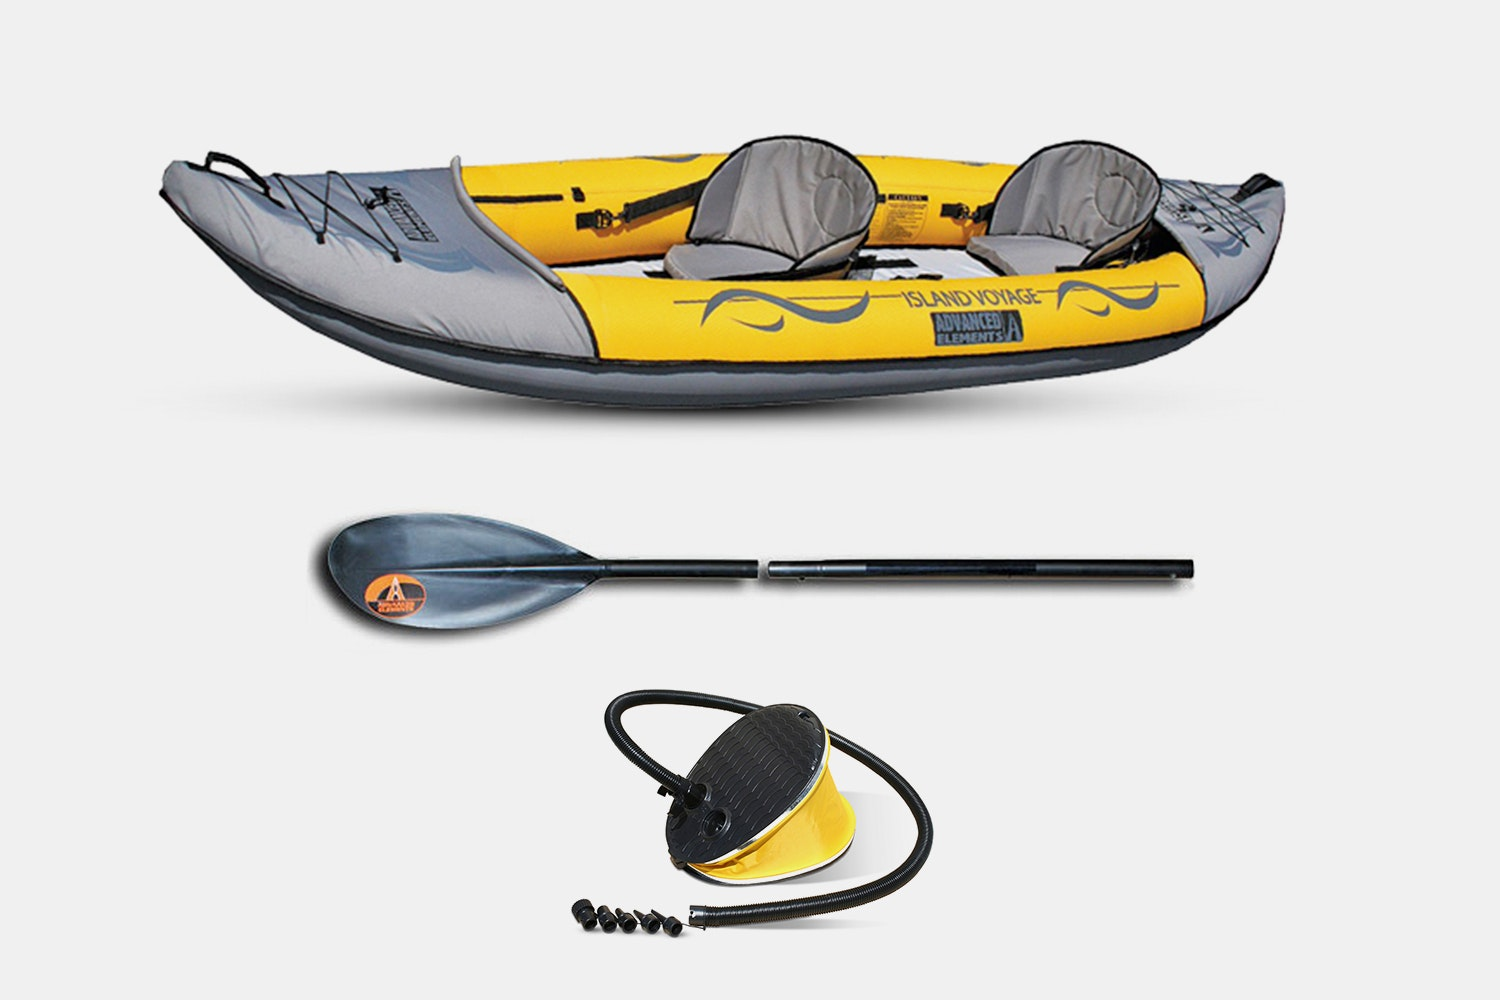 Island Voyage 2 Kayak + Foot Pump + 1 Paddle (+$70)